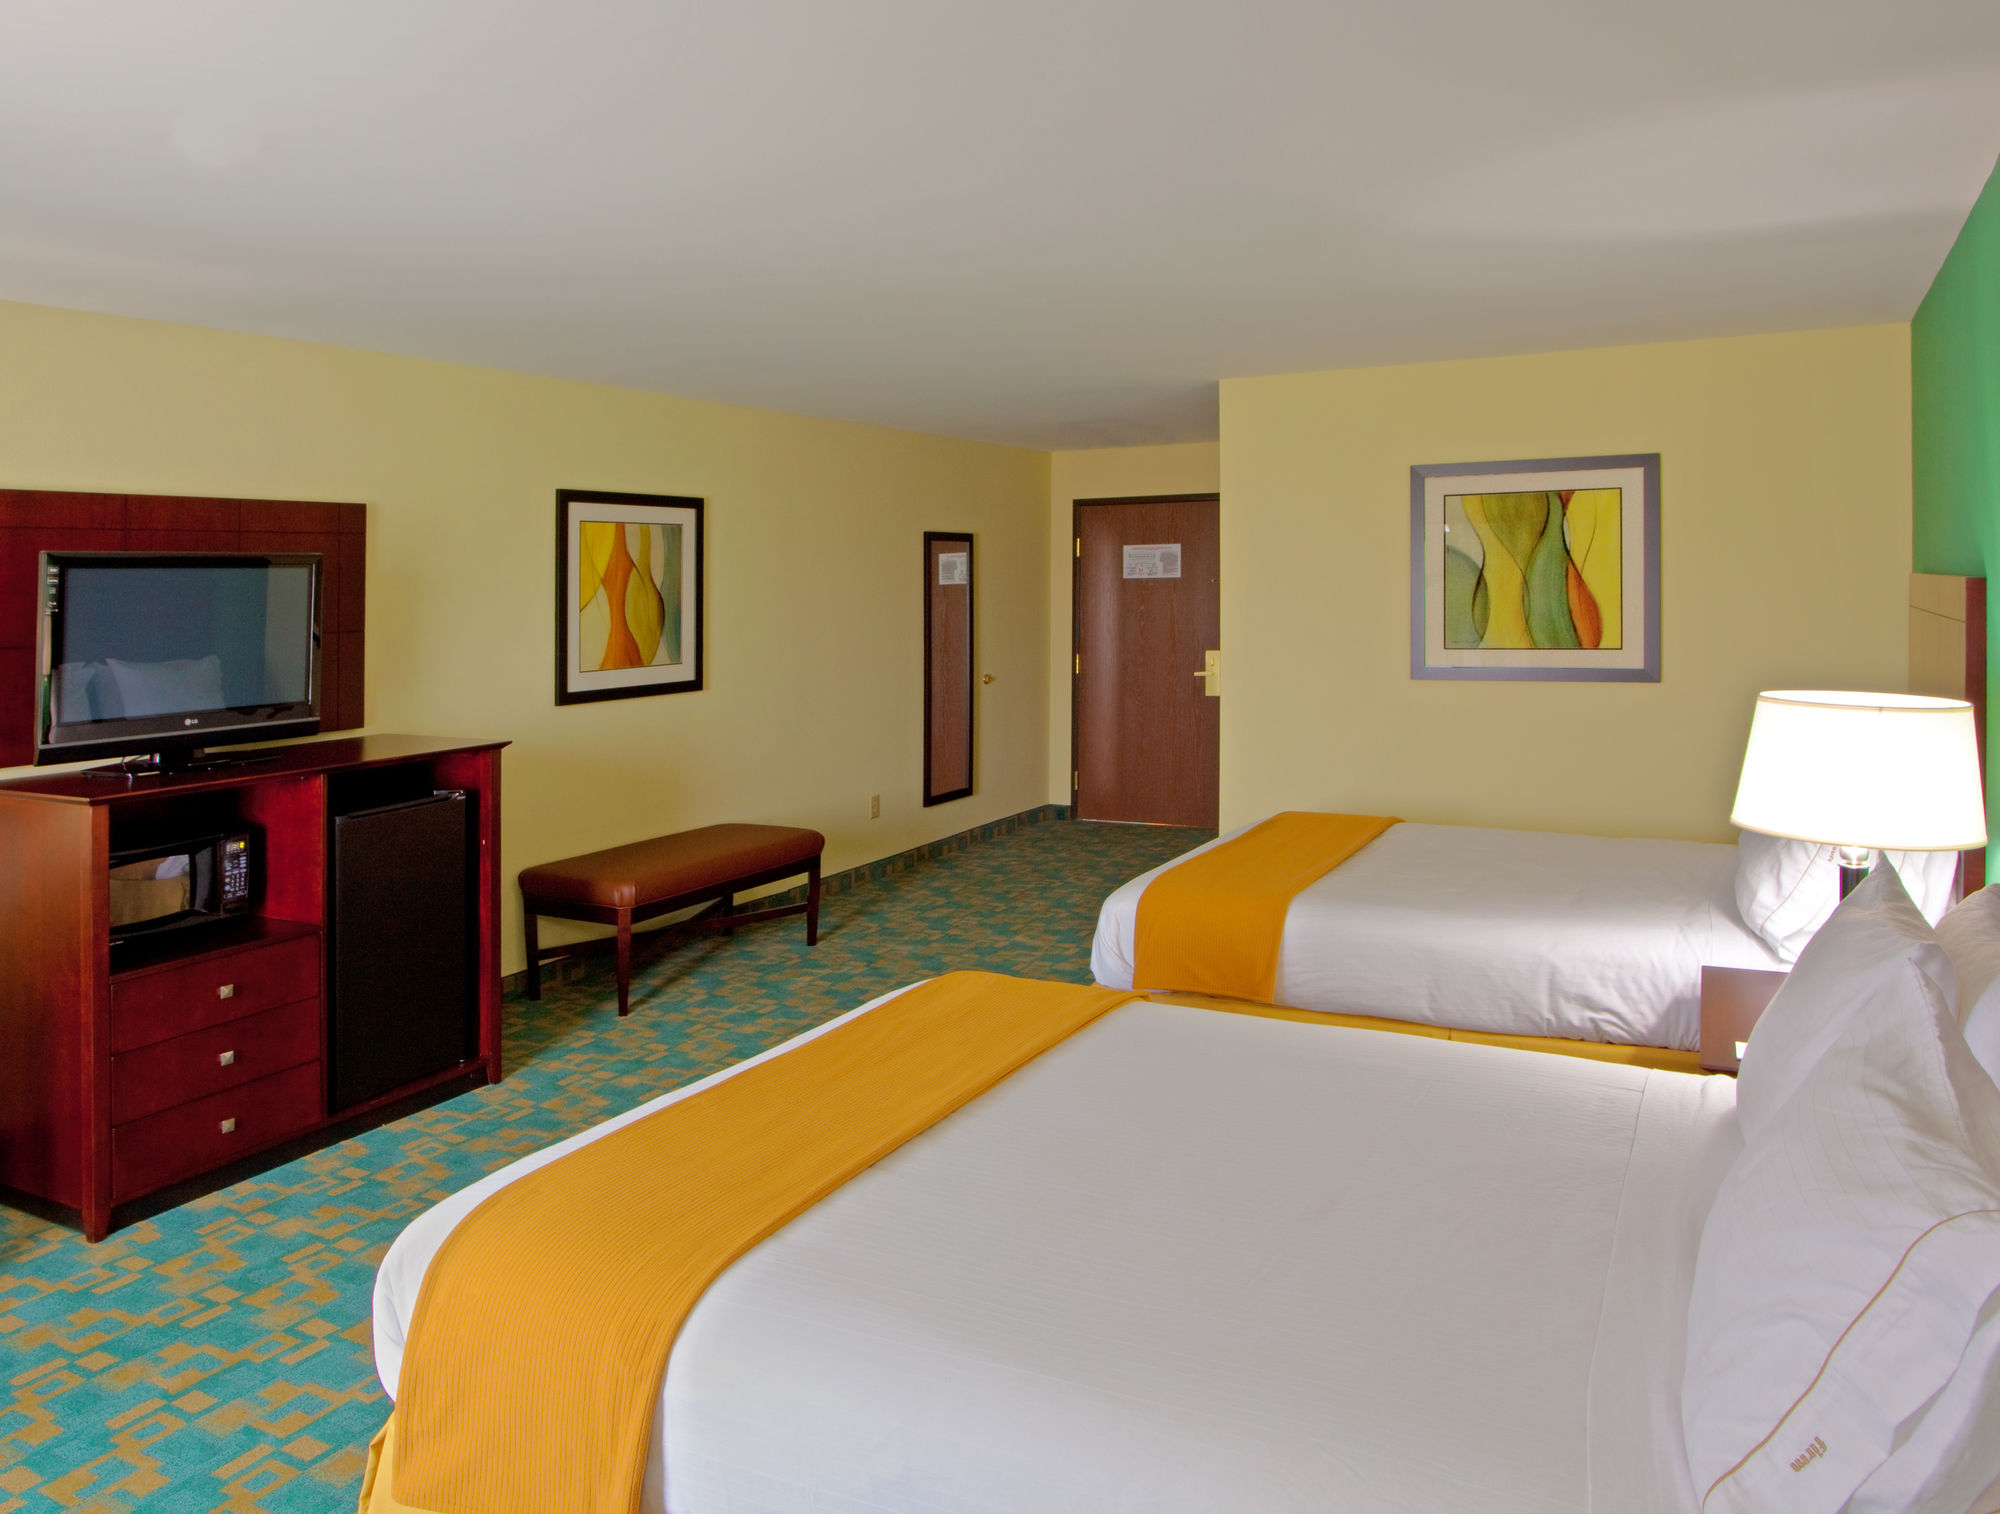 Holiday Inn Express & Suites in Thornburg, VA